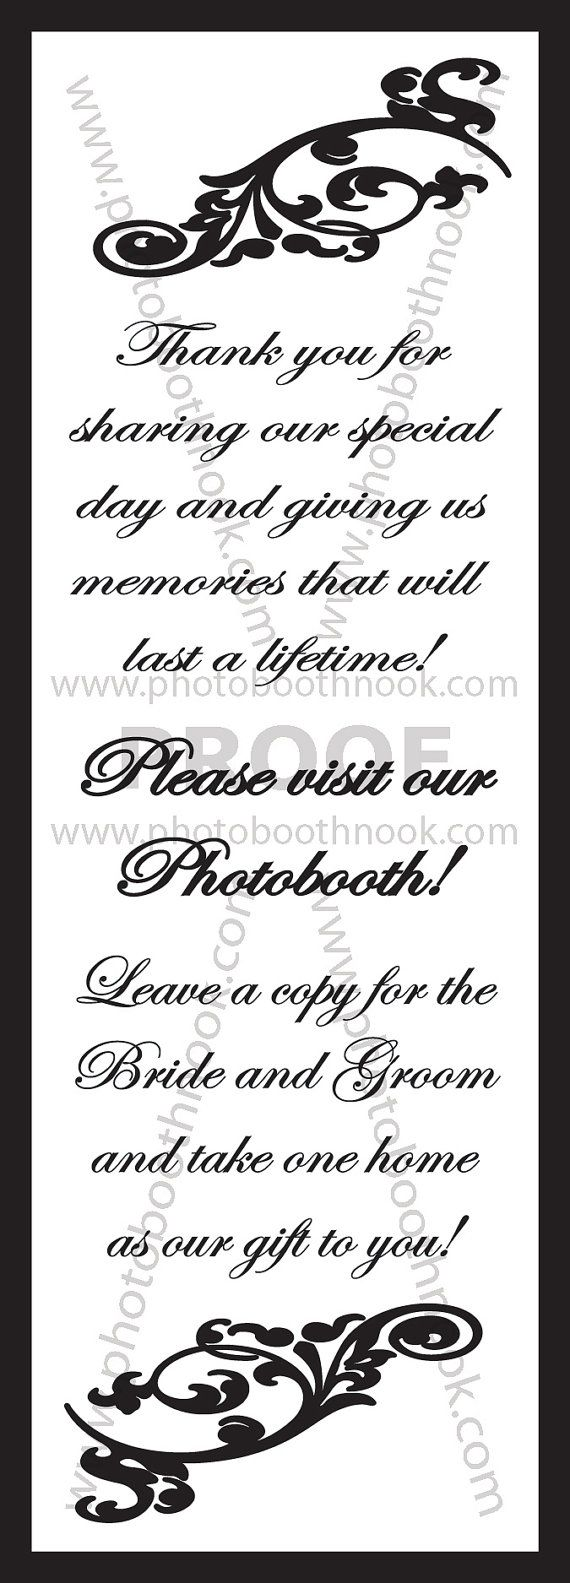 Classic Wedding Inserts for Photo Booth Frames - 250 pack   Wedding ...